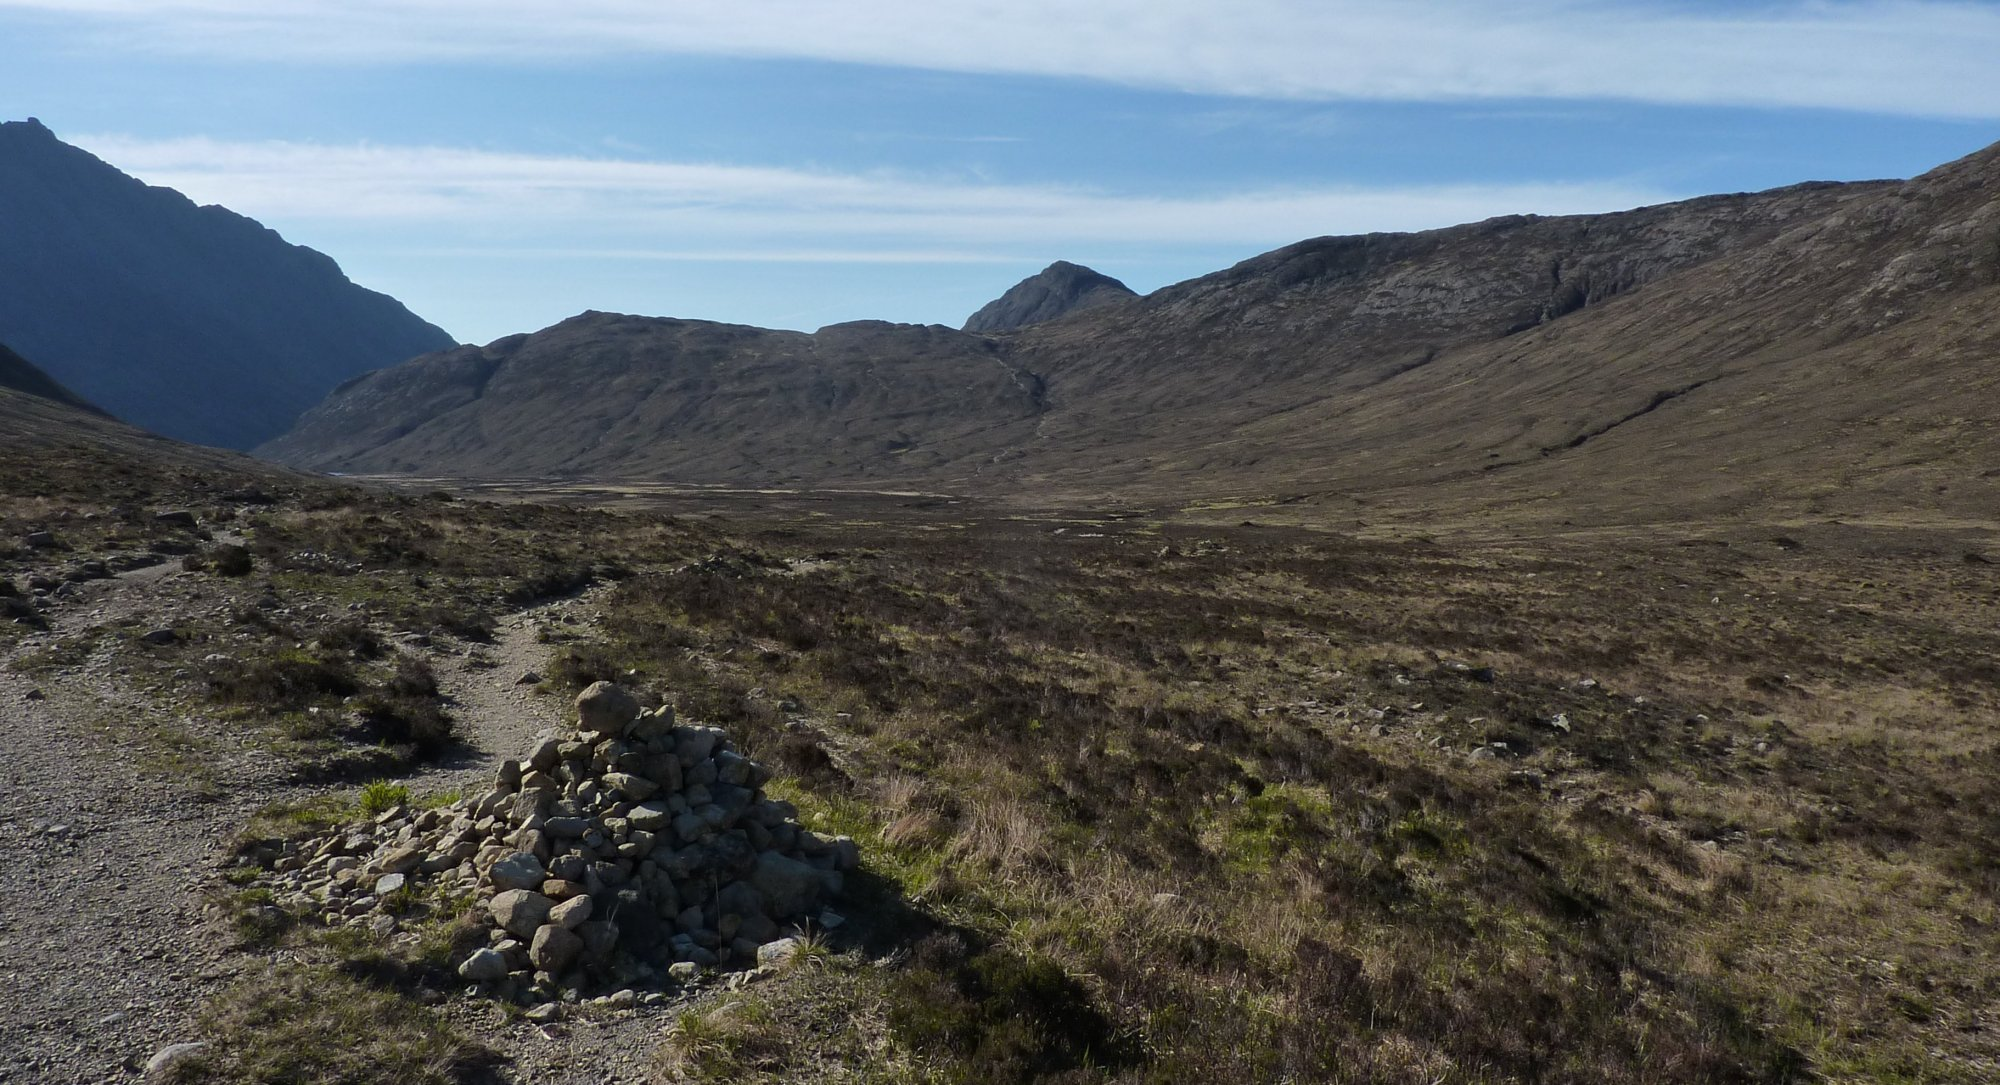 The 'decision cairn', left for the easy route, right means I have to take the Bad Step - I go left